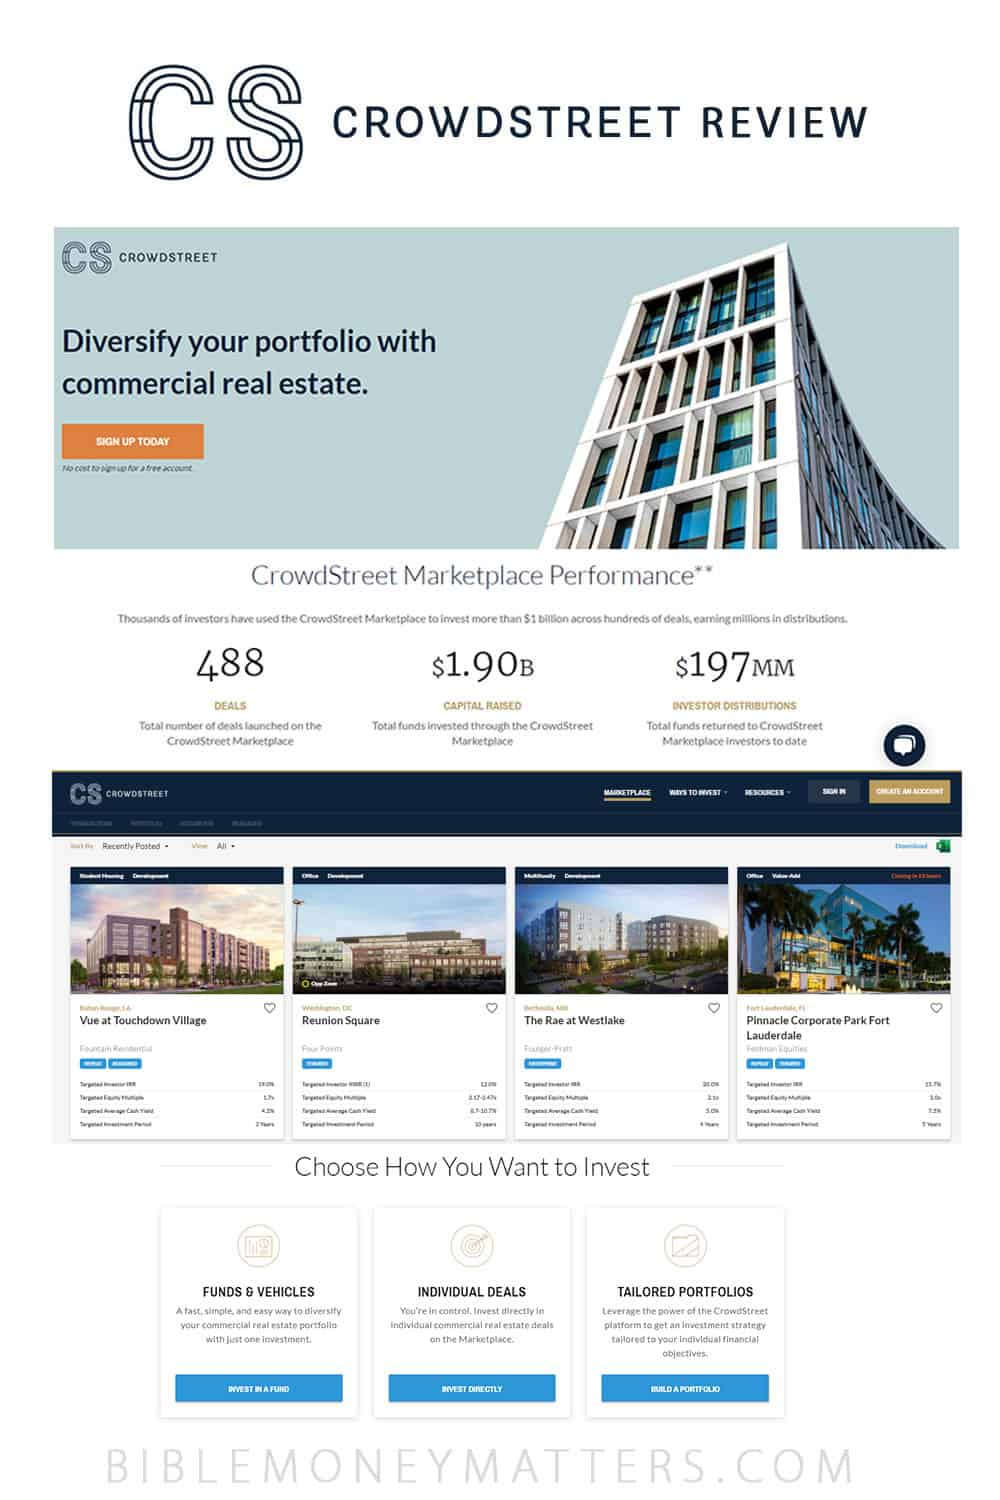 CrowdStreet Review: Invest In Commercial Real Estate To Diversify Your Portfolio